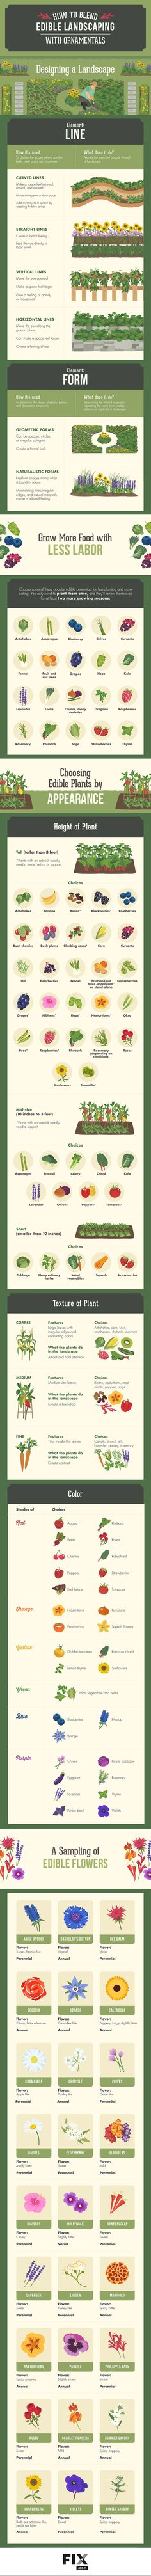 Check out How To Blend Edible Landscaping With Ornamentals [Infographic] by fix.com | pioneersettler #Garden #Flowers #Vegetables